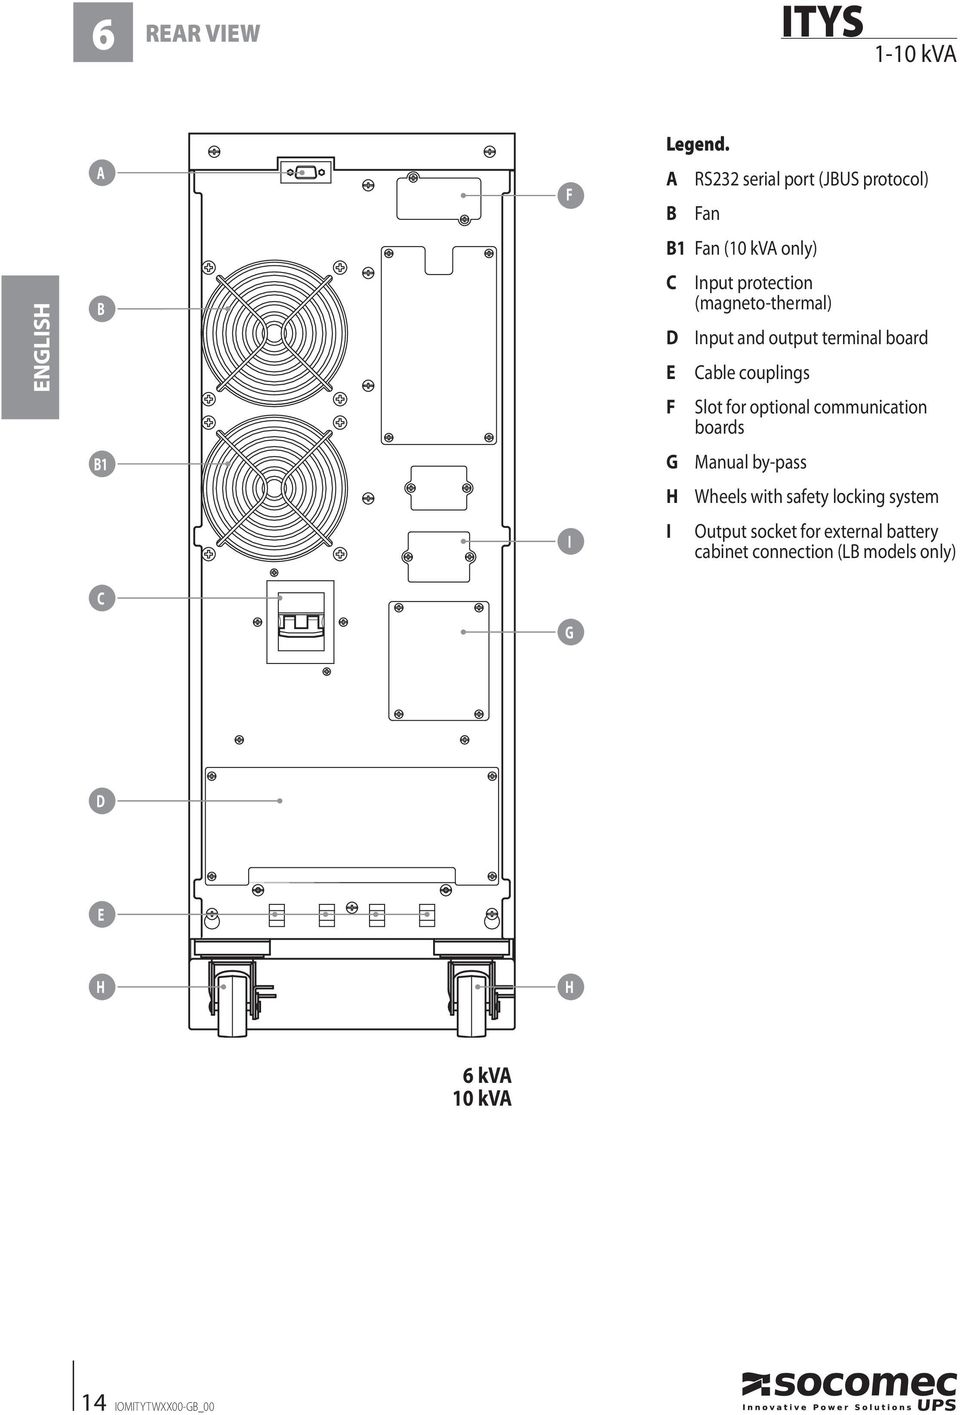 Installation And Operating Manual Itys Pdf Riello Ups Circuit Diagram Protection Magneto Thermal Input Output Terminal Board Cable Couplings Slot For Optional